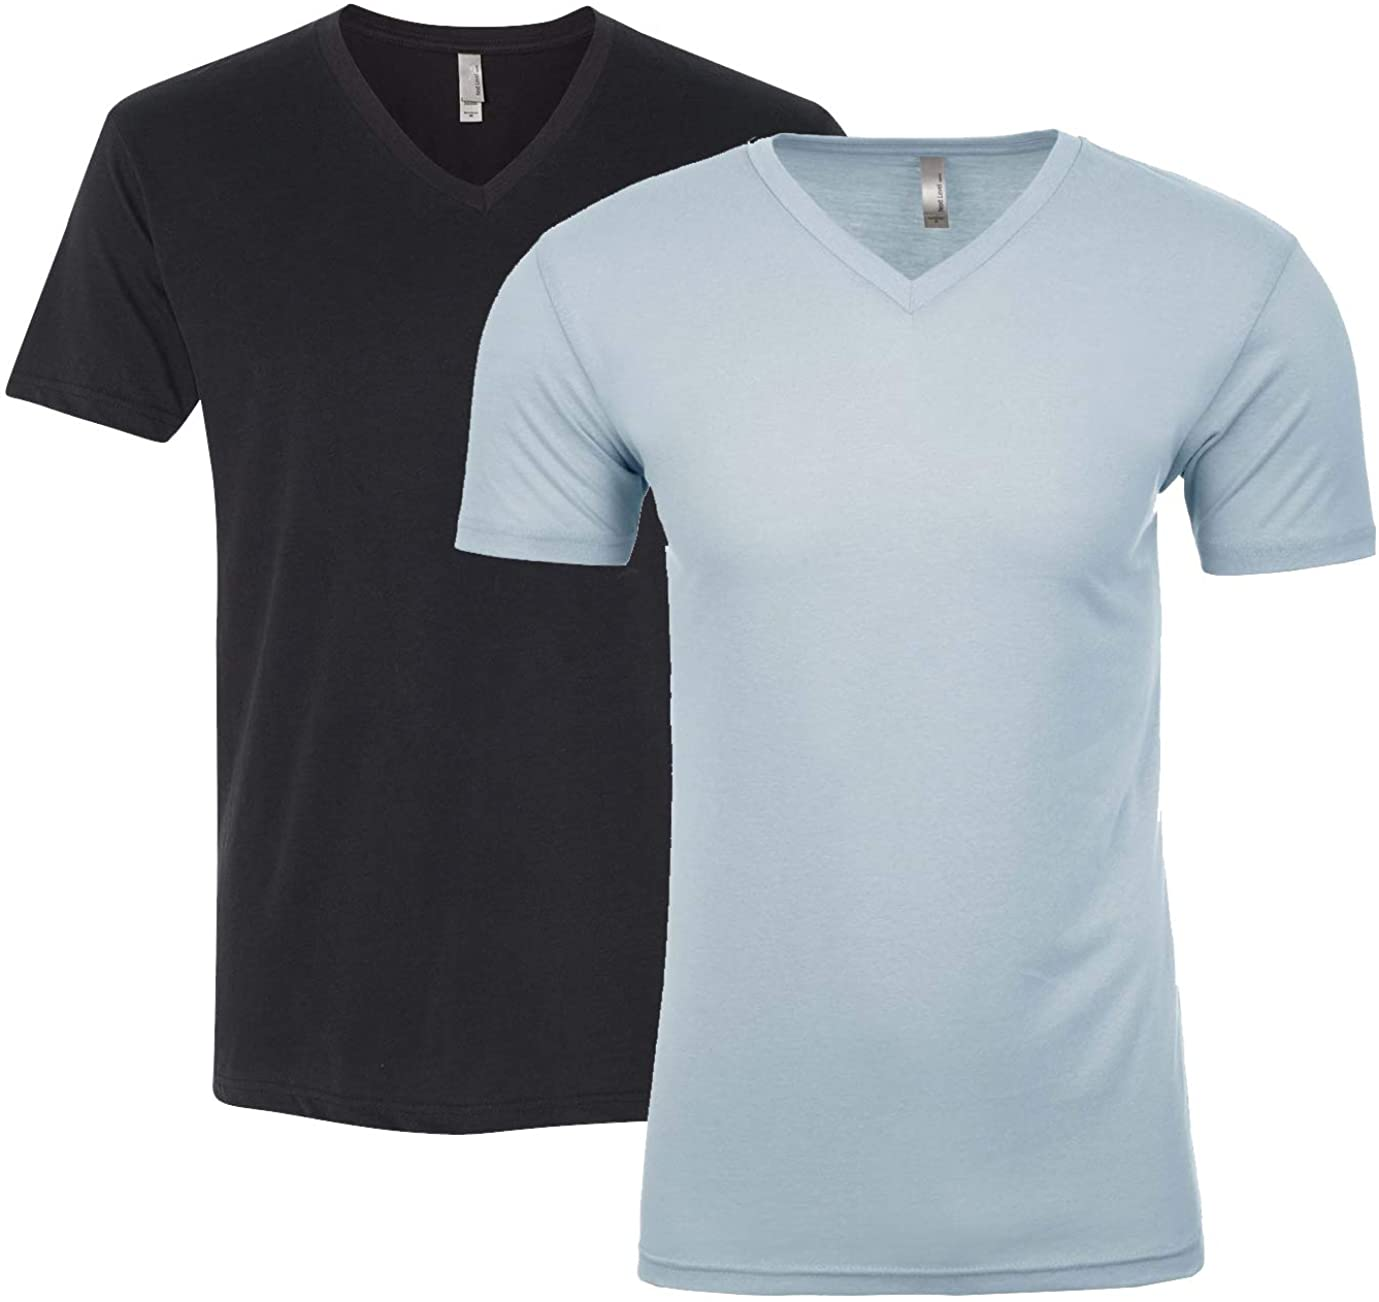 Next Level Apparel 6440 Mens Premium Fitted Suided V-Neck, Black + Light Blue (2 Shirts)-Large